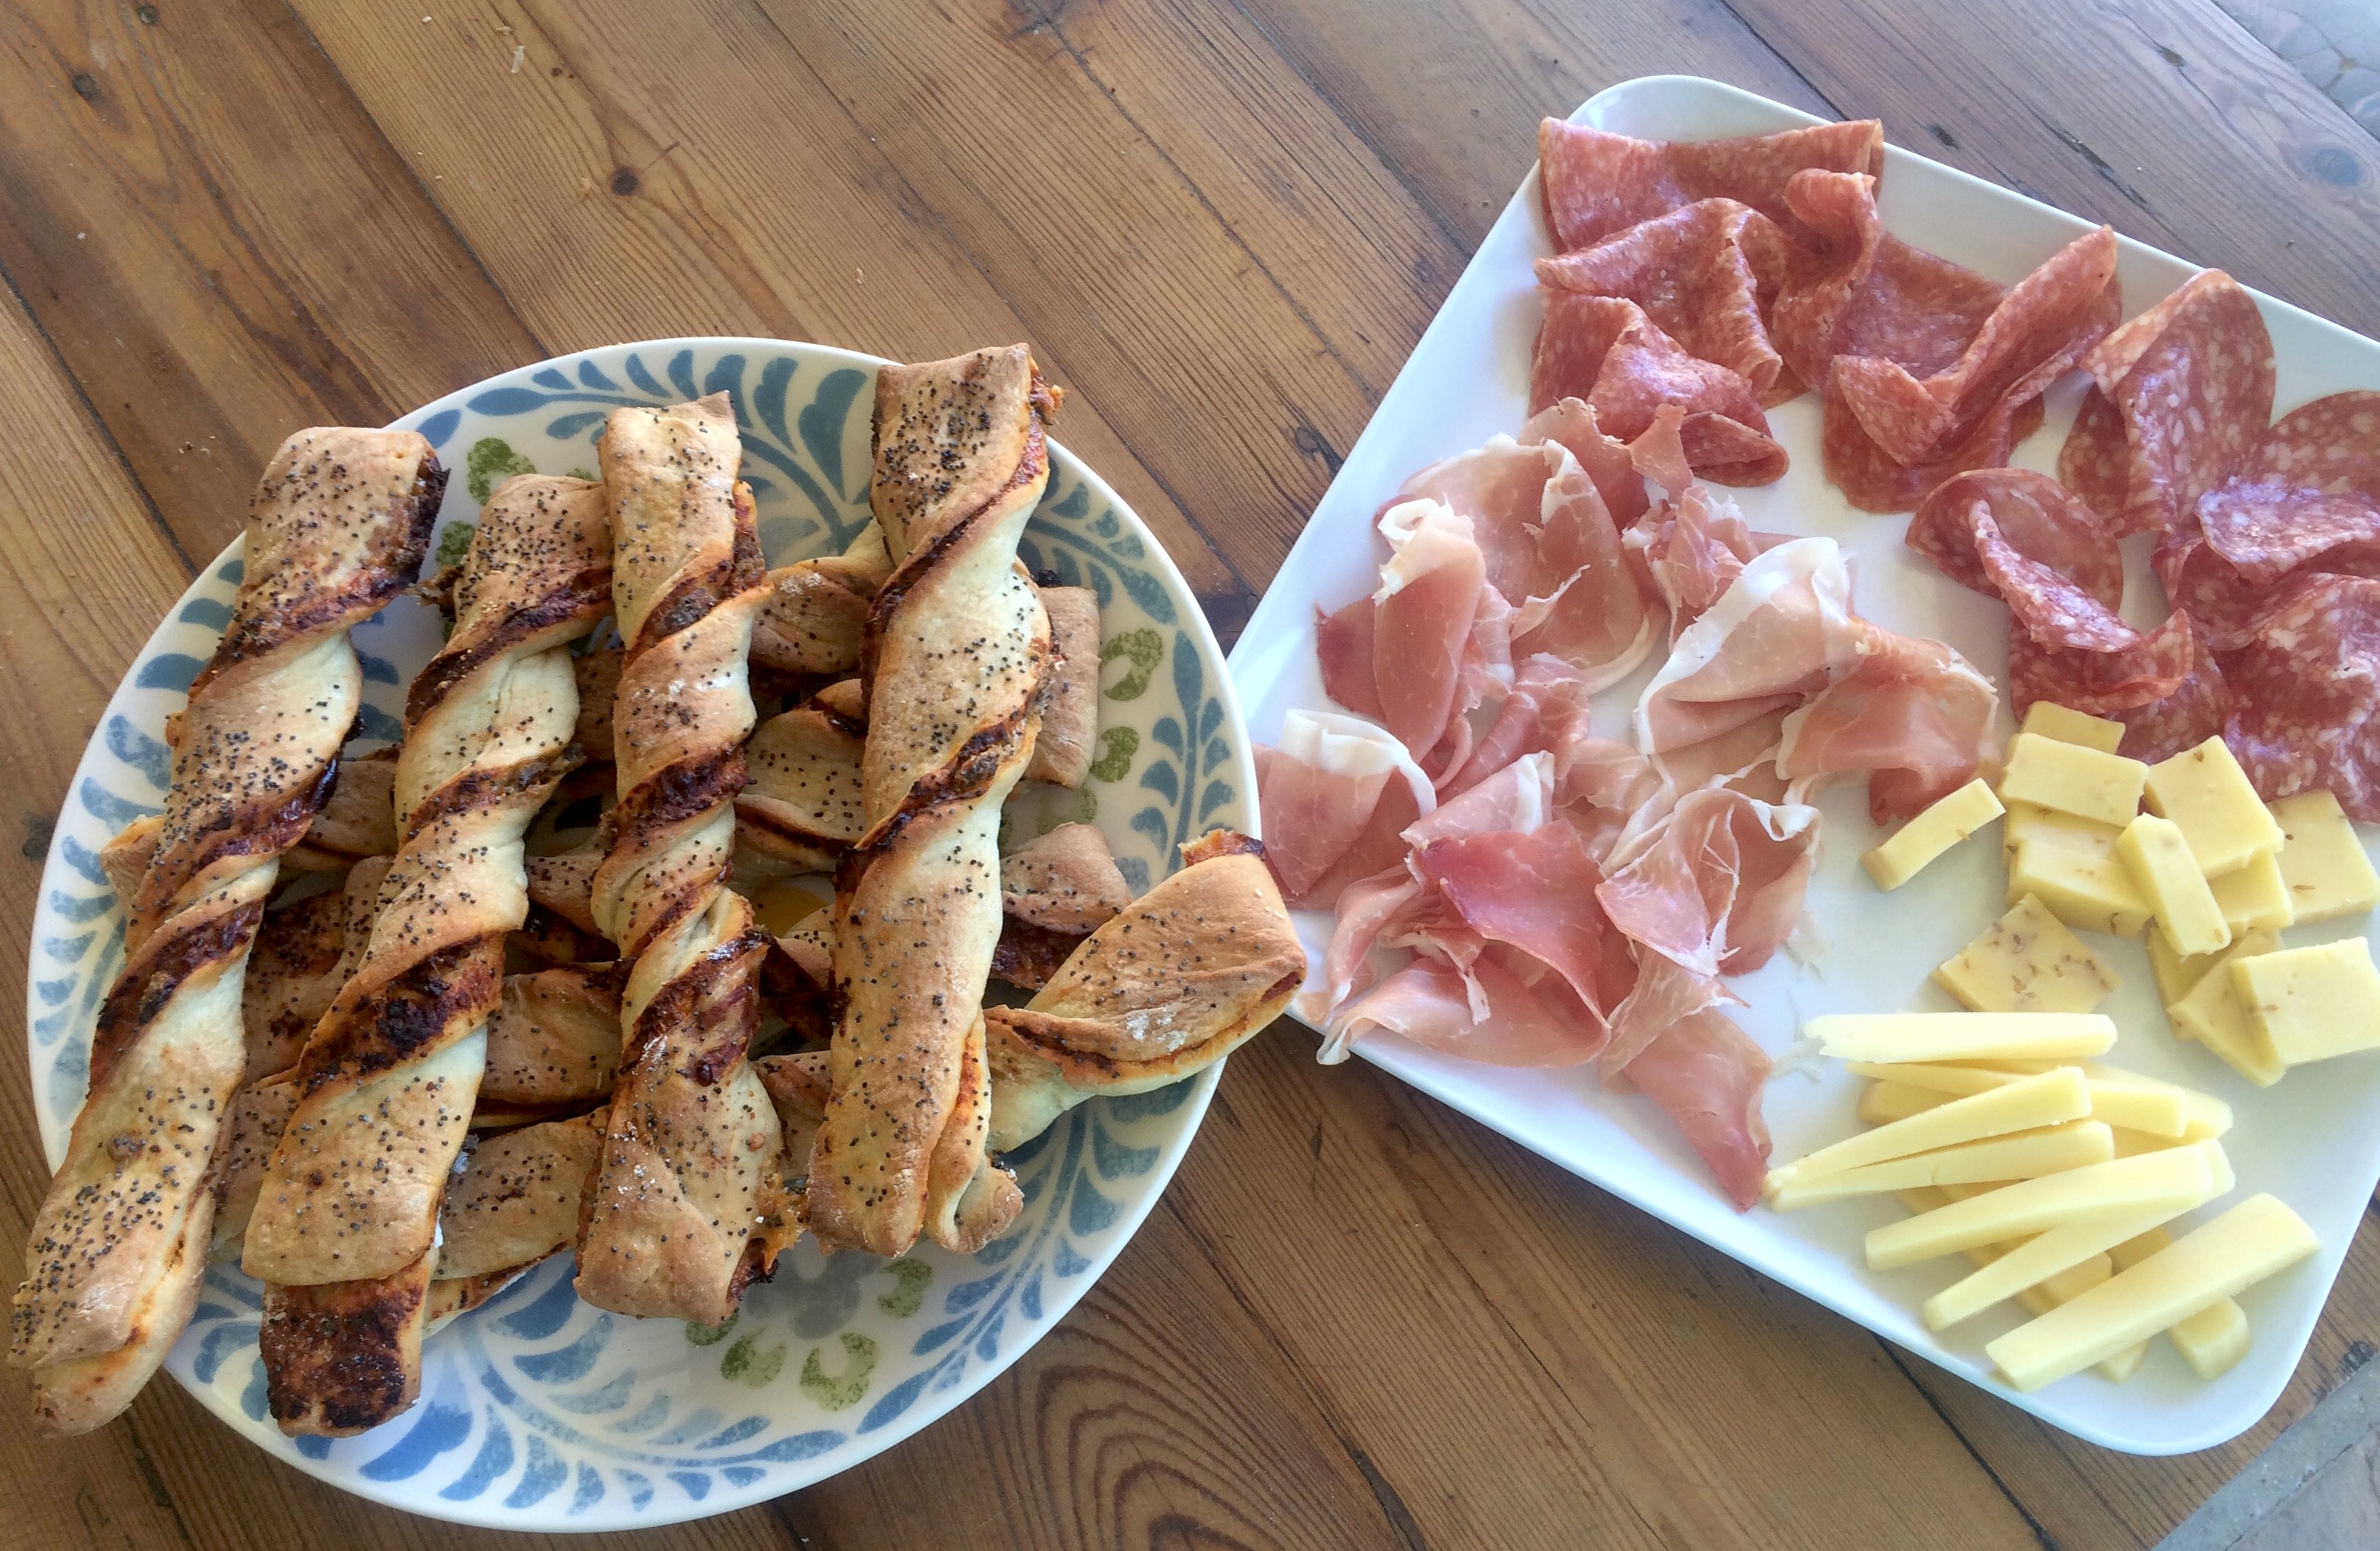 Sundried tomato and anchovy breadsticks